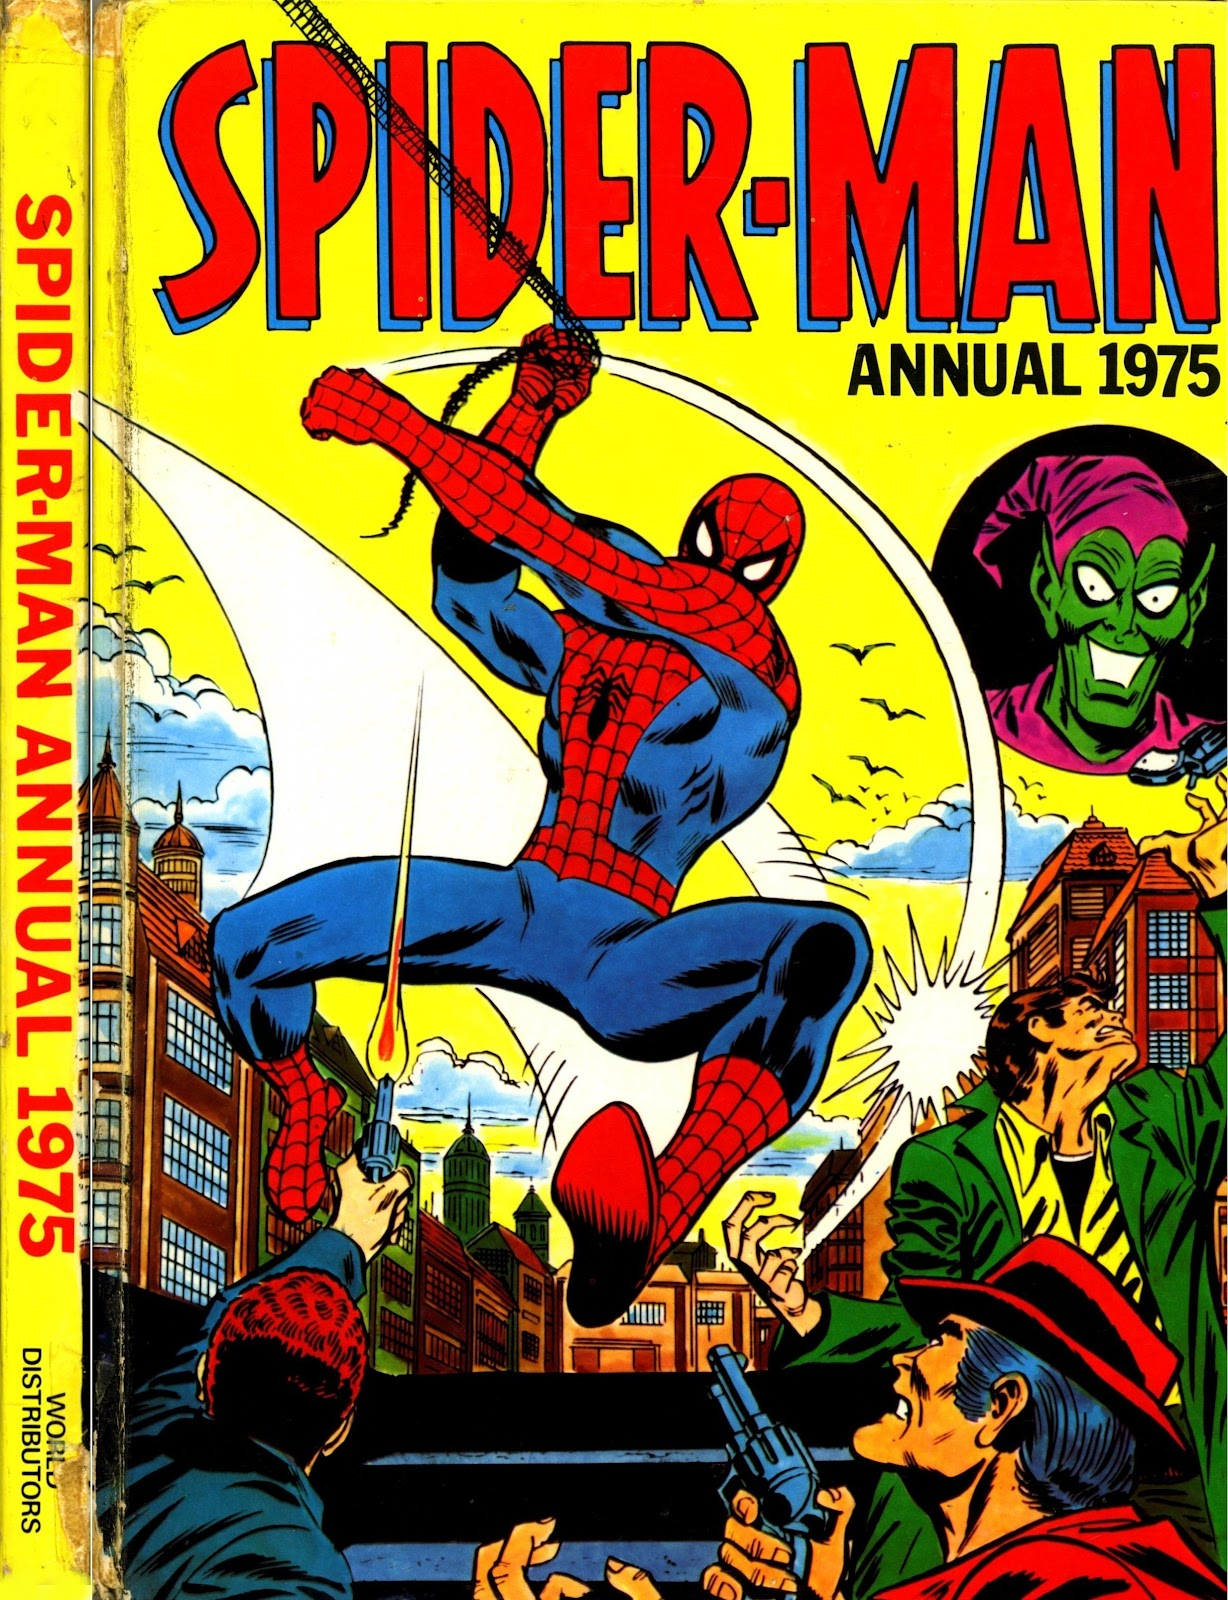 Spider-Man Annual (1974) 1975 Page 1